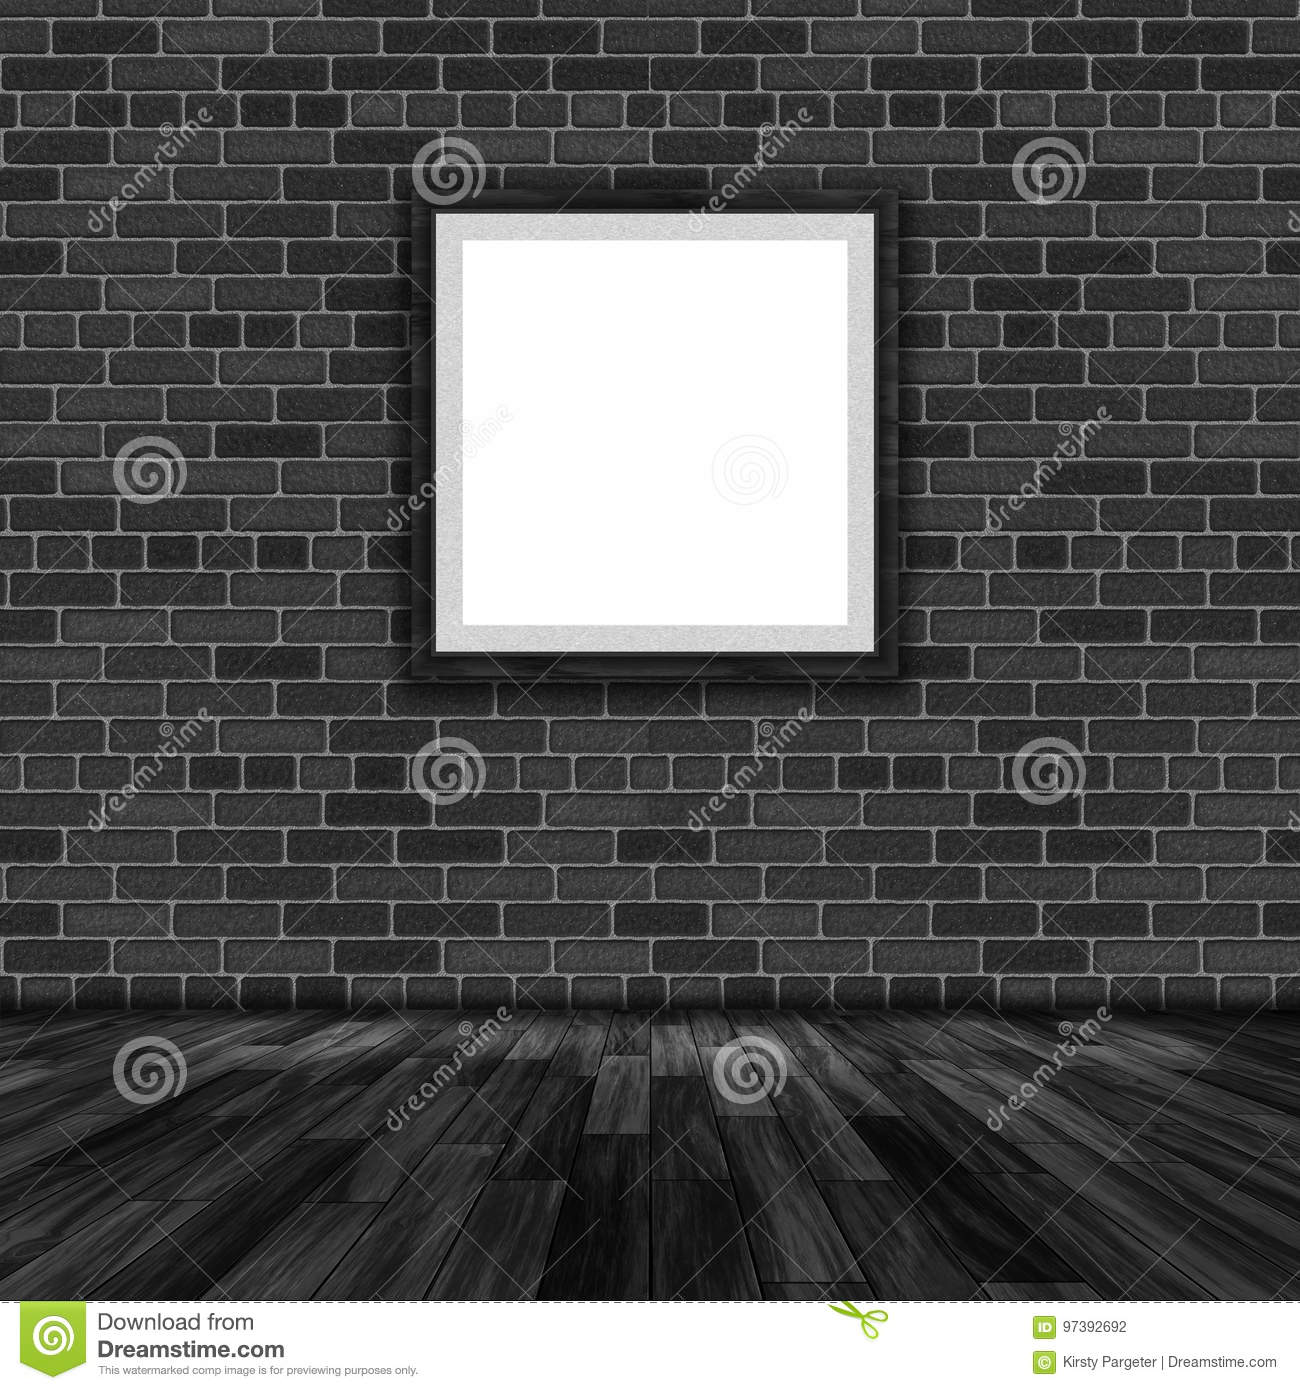 d3a115053ed D Blank Picture Frame Hanging On A Brick Wall Stock Illustration ...